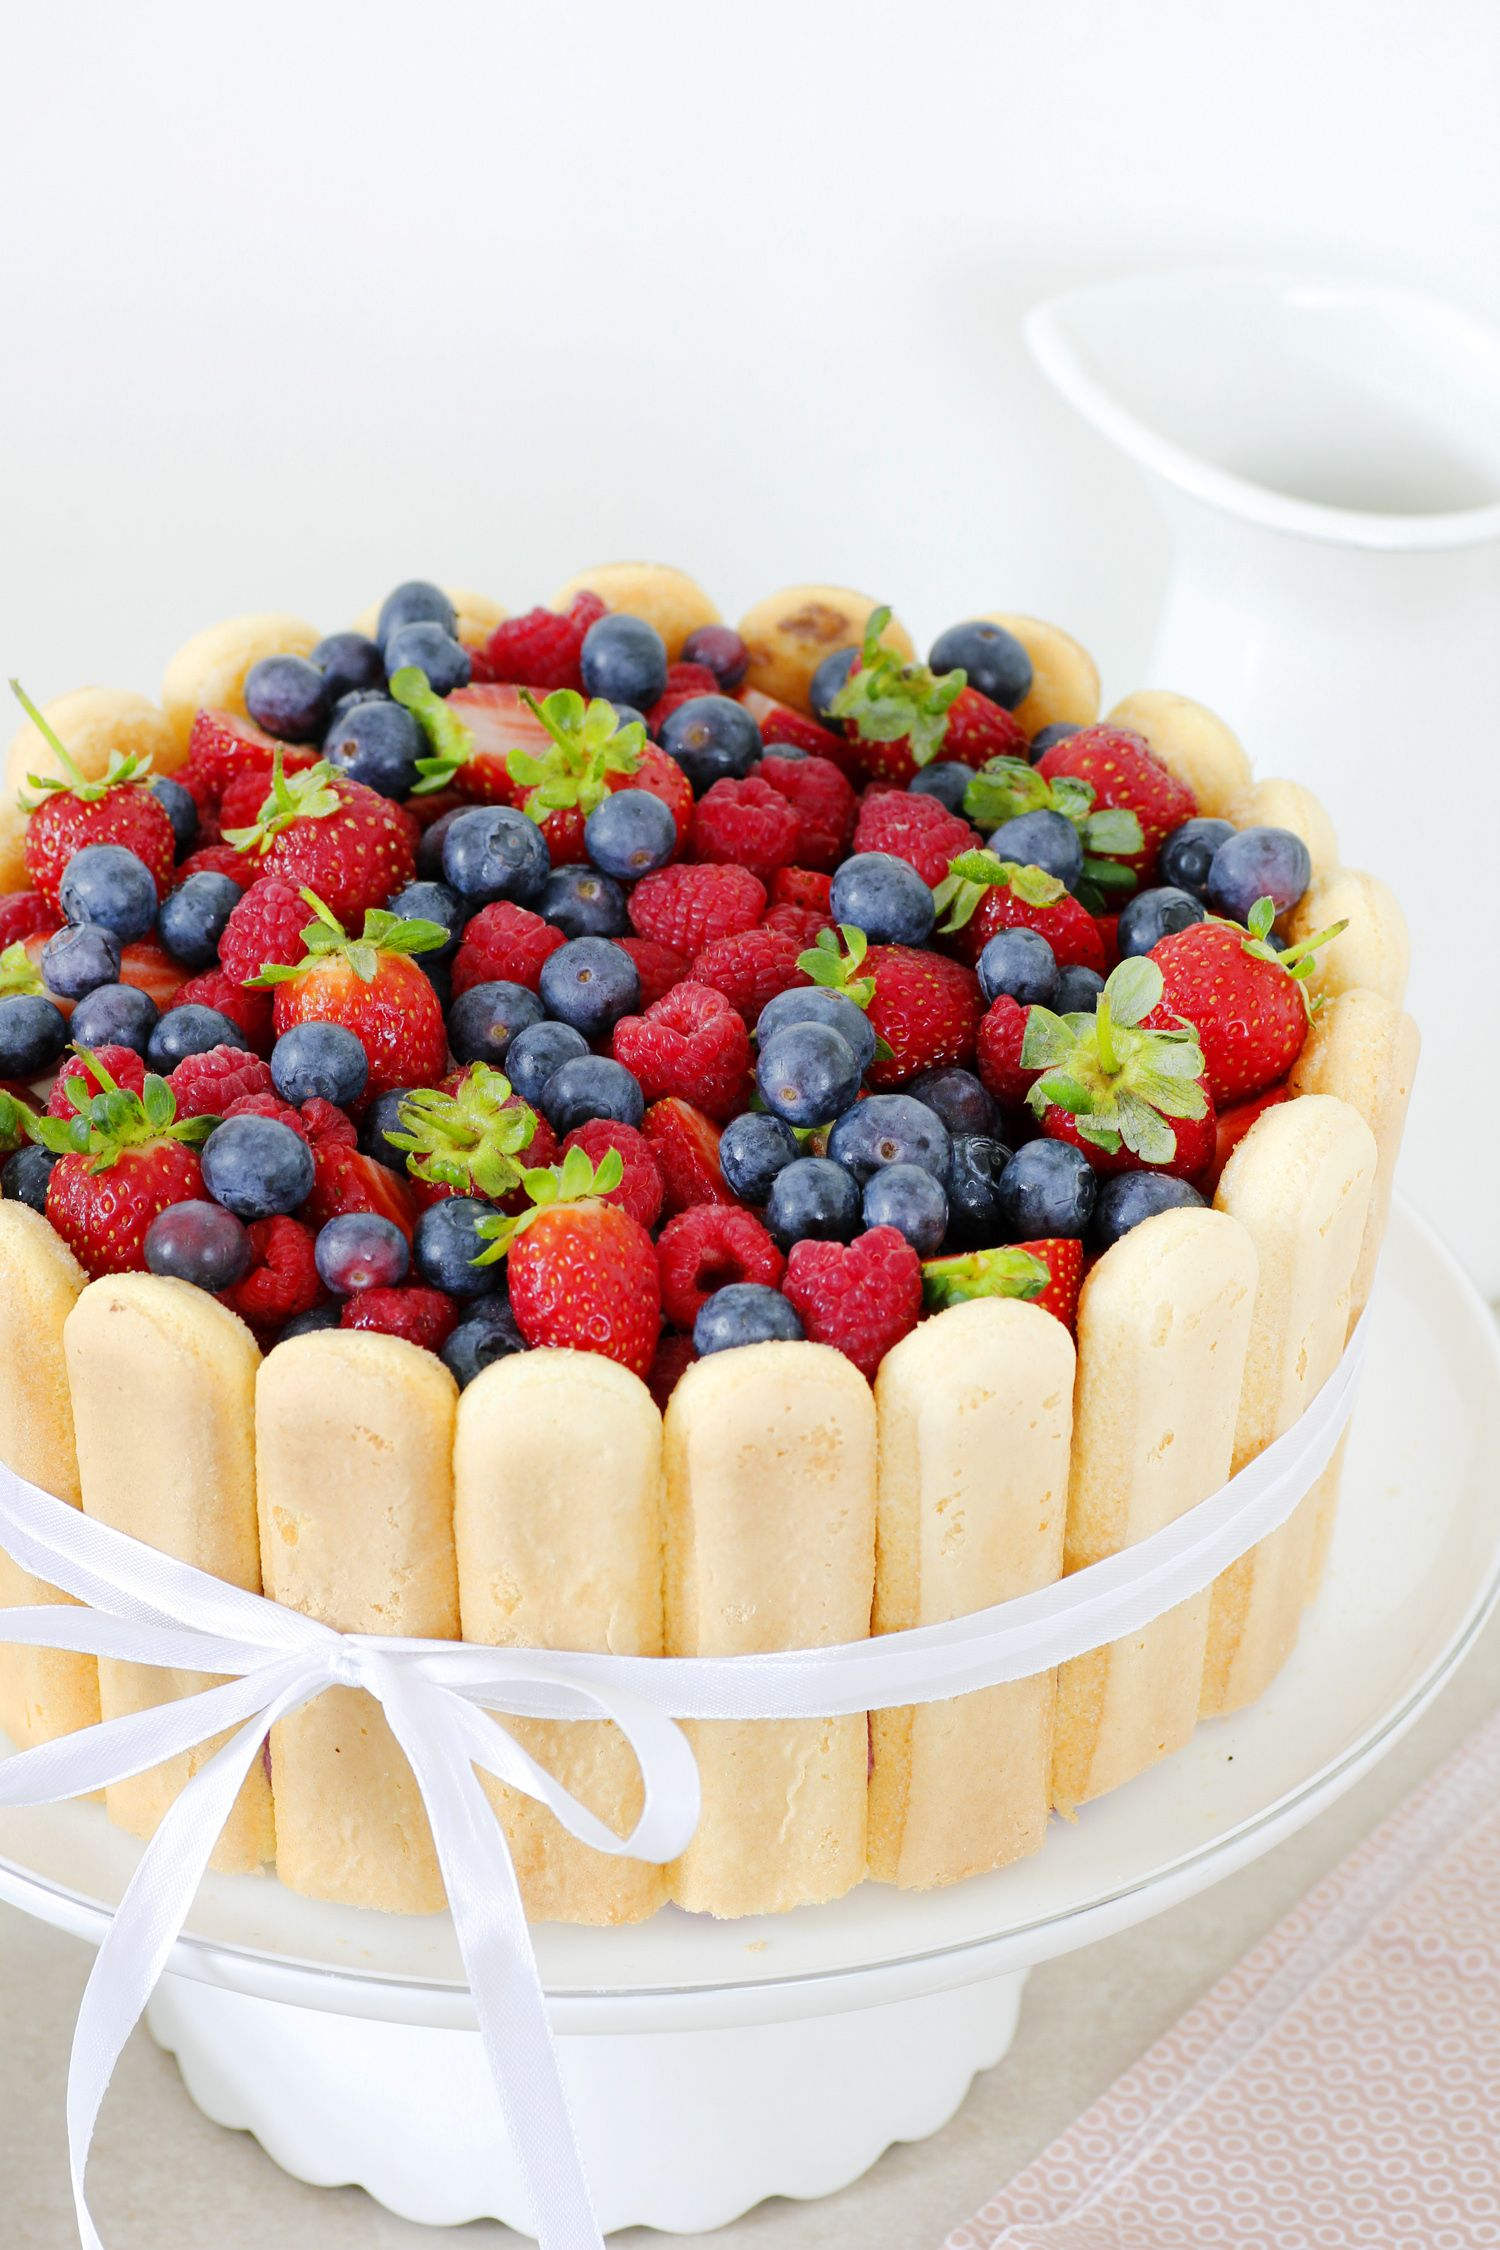 Chocolate and Vanilla Charlotte Cake with Berries